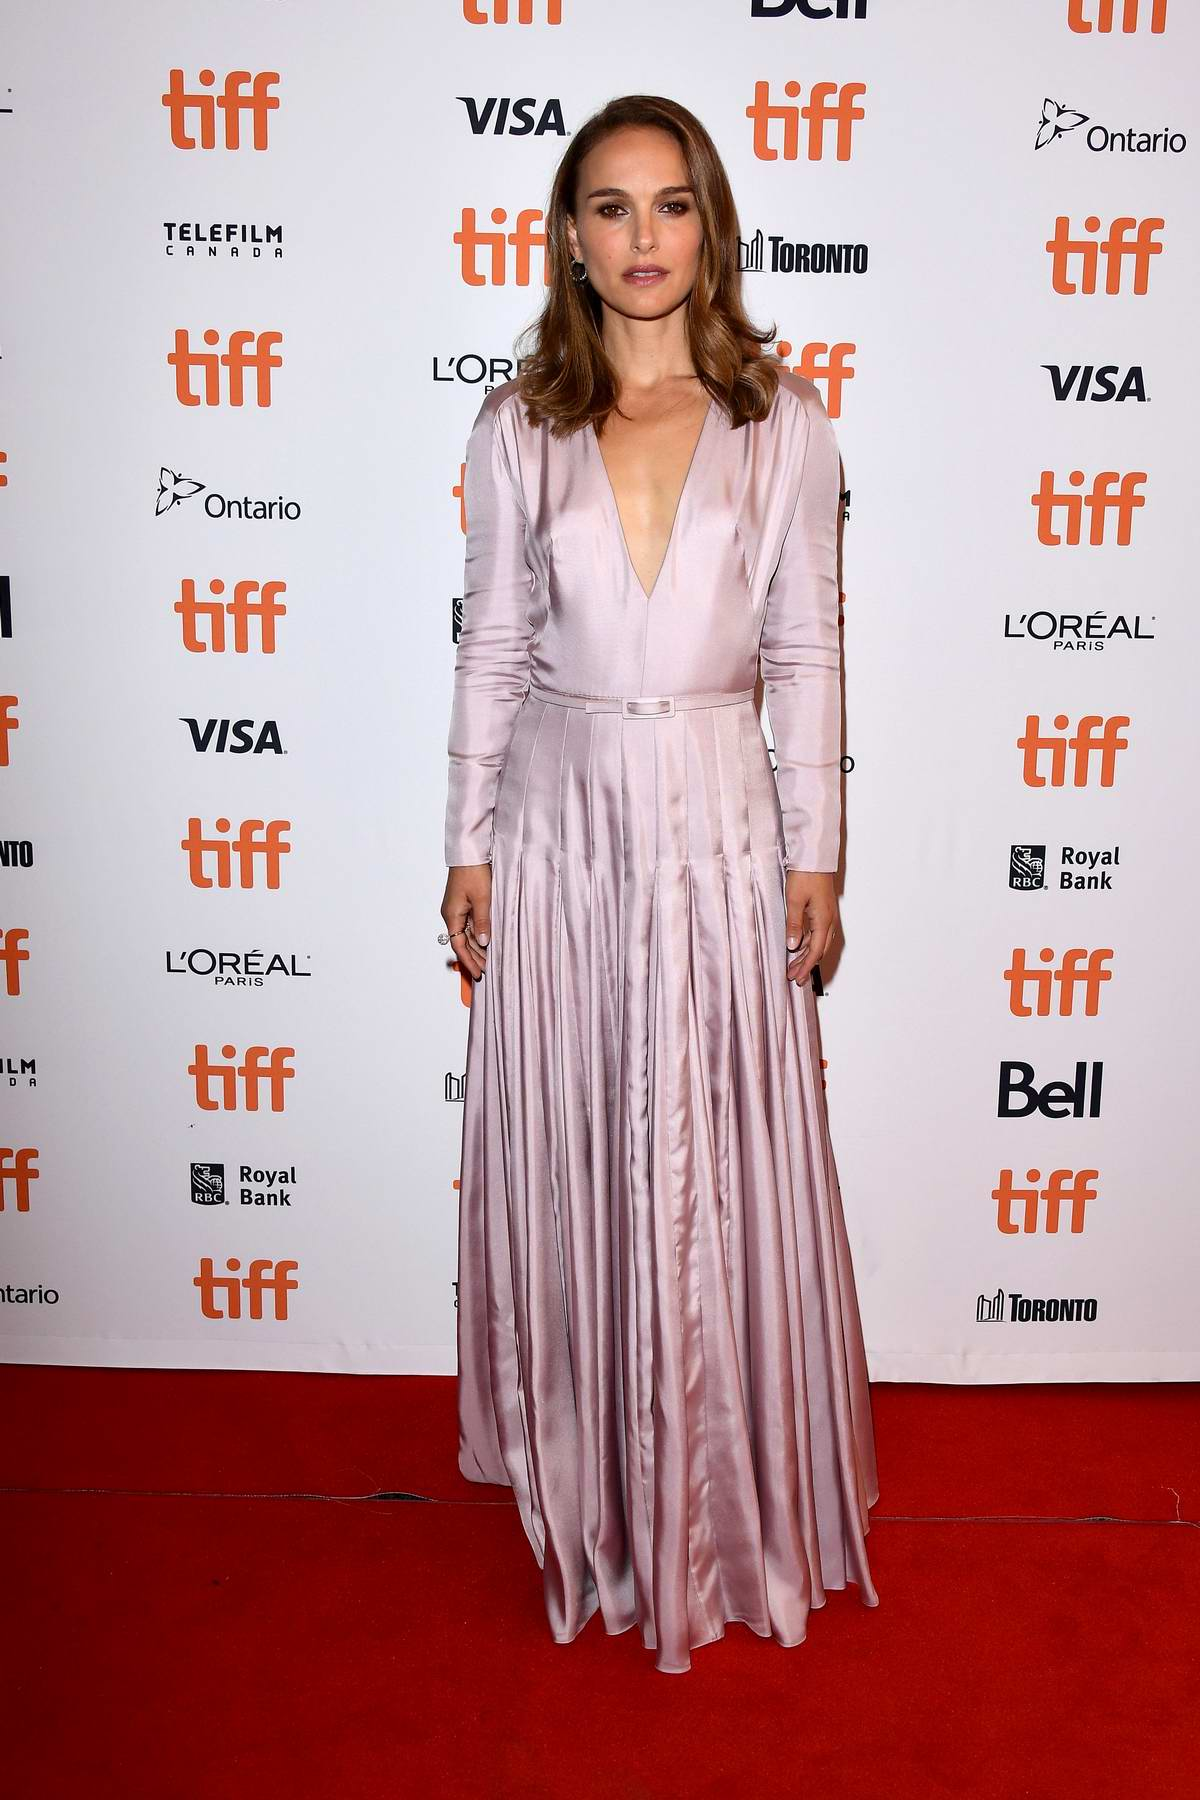 Natalie Portman attends 'Vox Lux' premiere during the Toronto International Film Festival (TIFF 2018) in Toronto, Canada